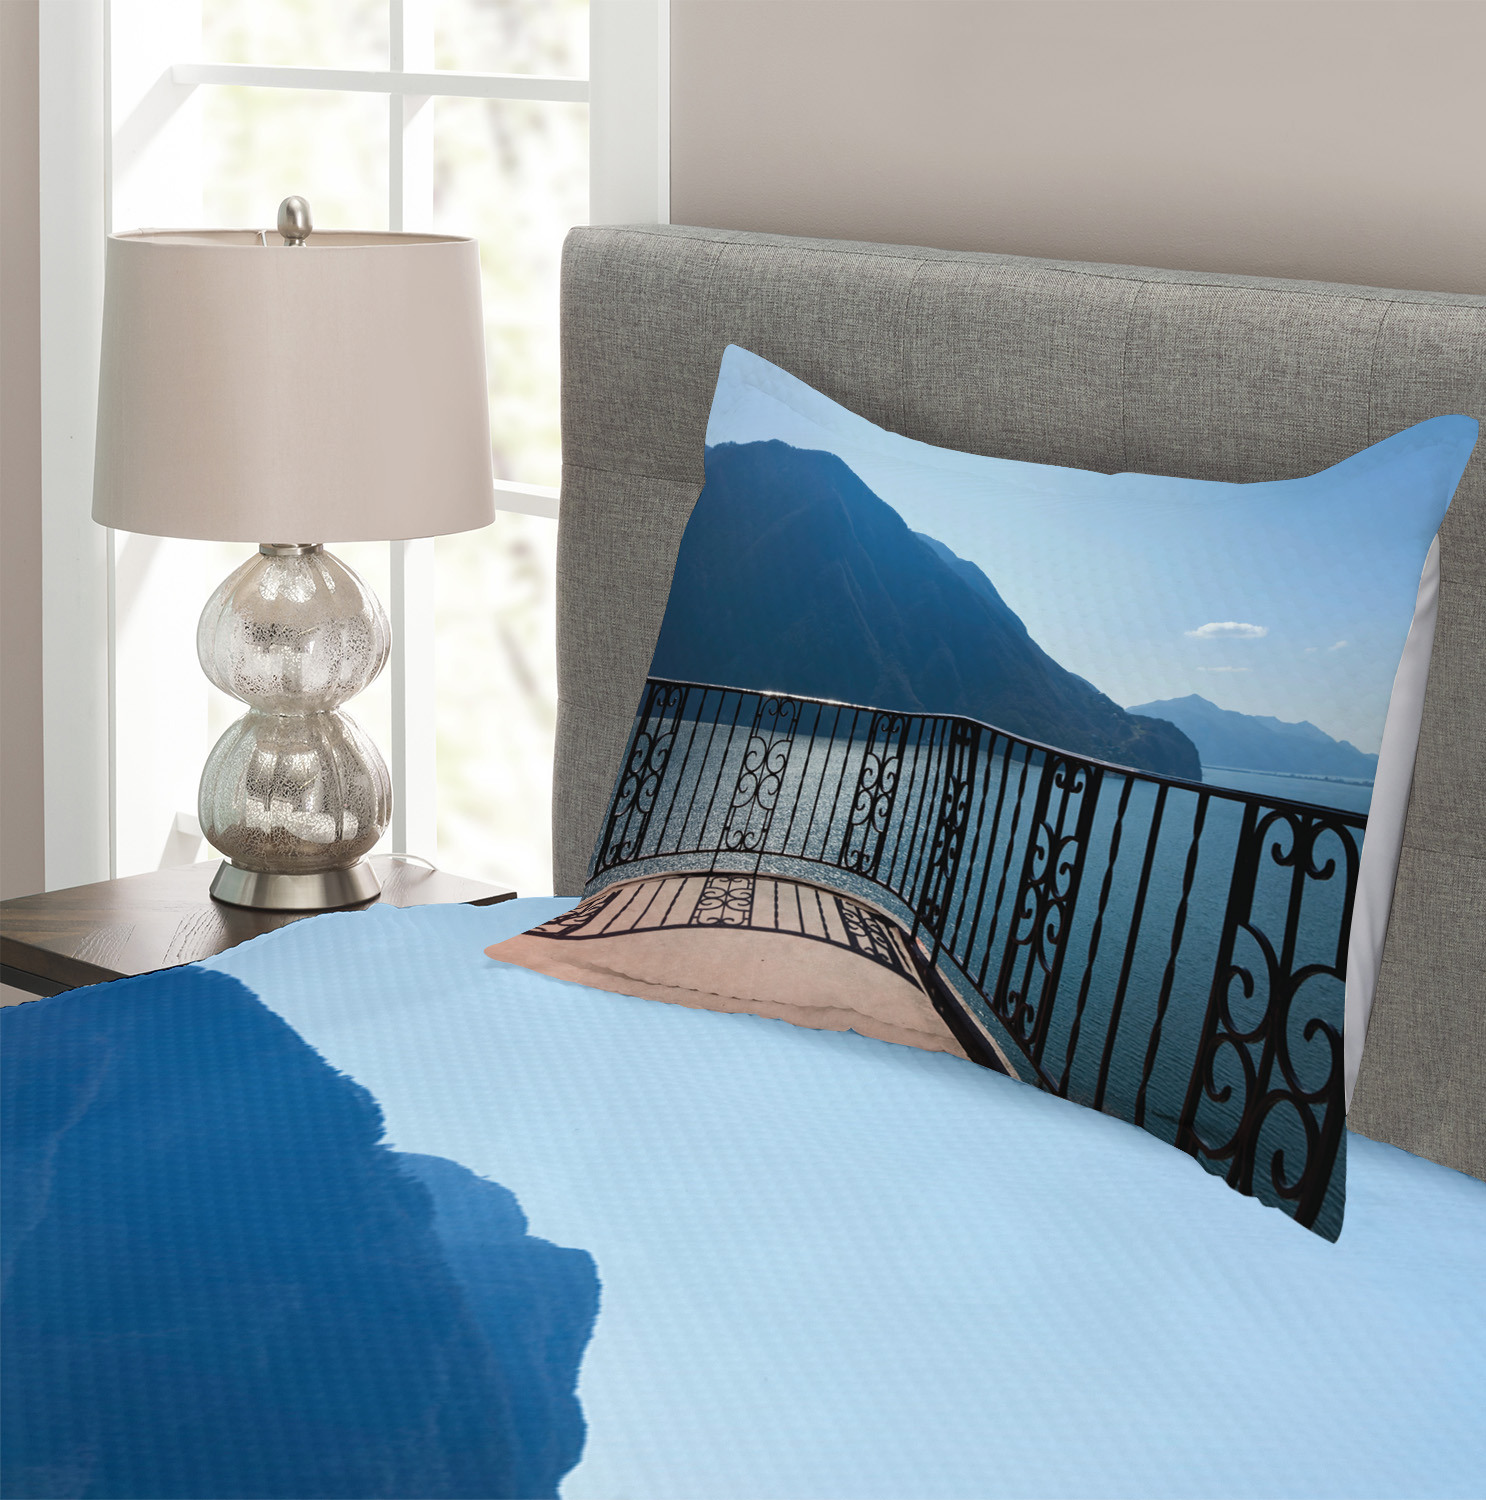 Details about  /Blue Quilted Bedspread /& Pillow Shams Set Island Mountain Ocean View Print